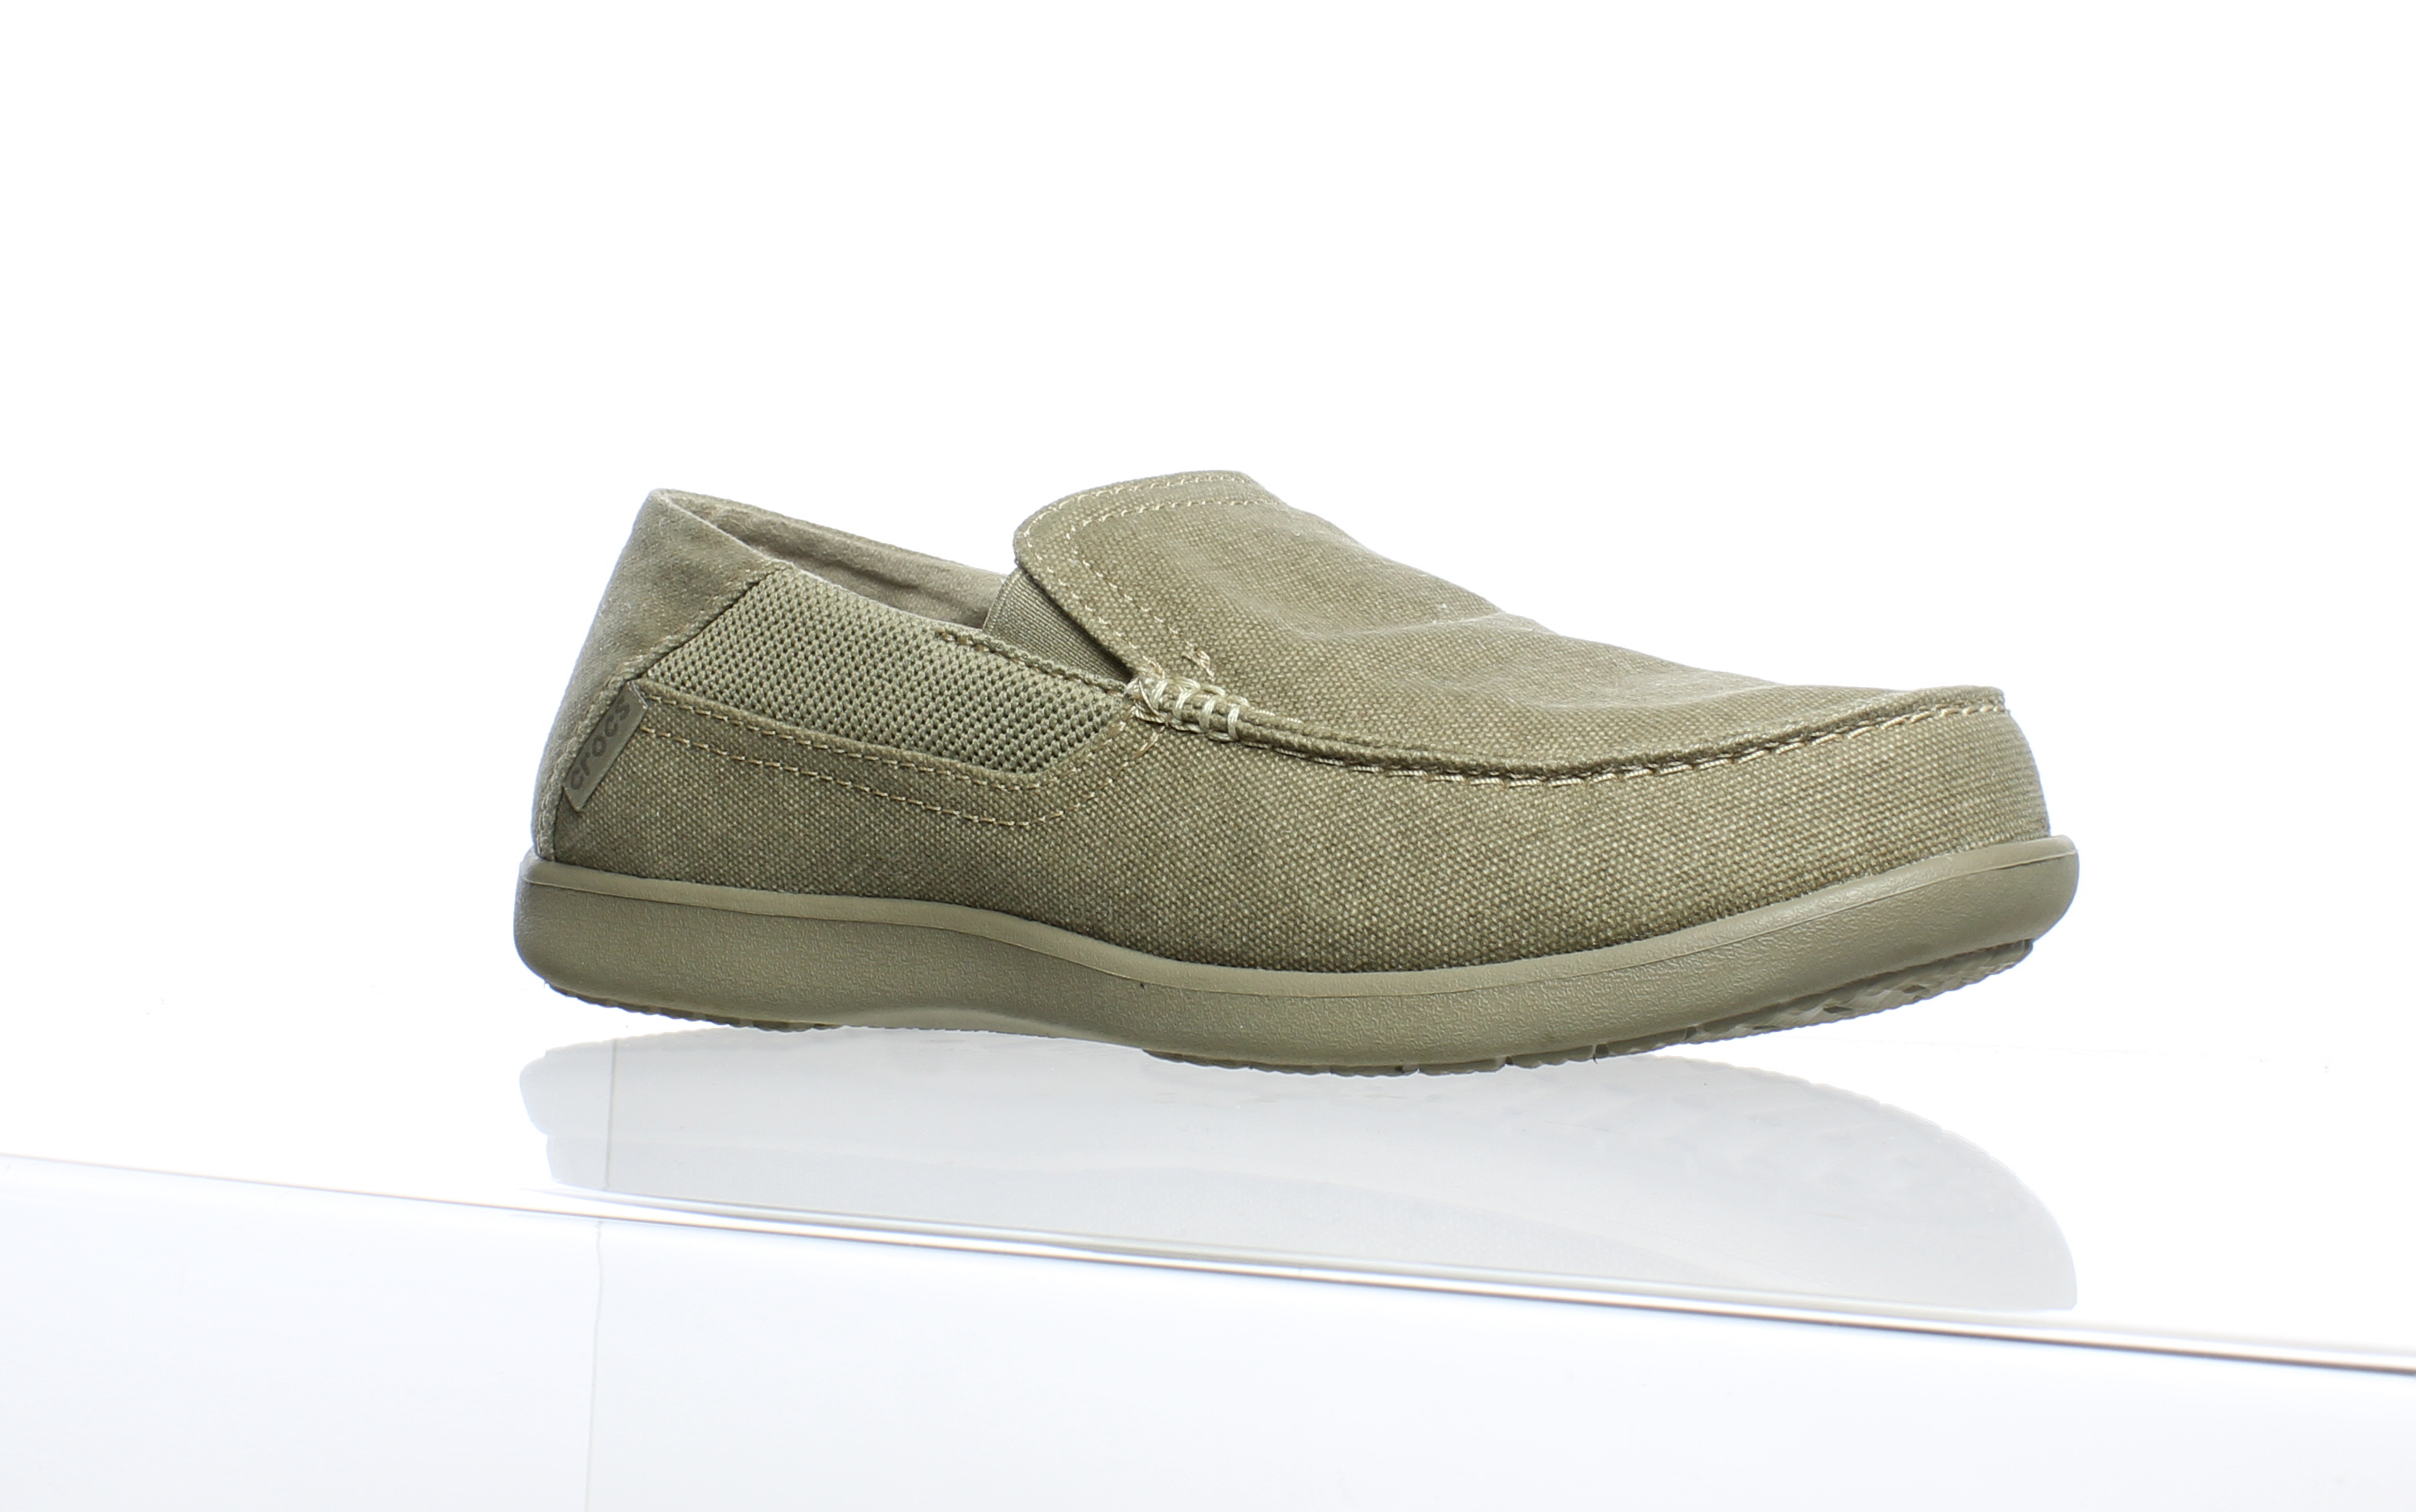 5ba3124ea83 Crocs mens santa cruz khaki loafers size jpg 3004x1880 Santa cruz loafers